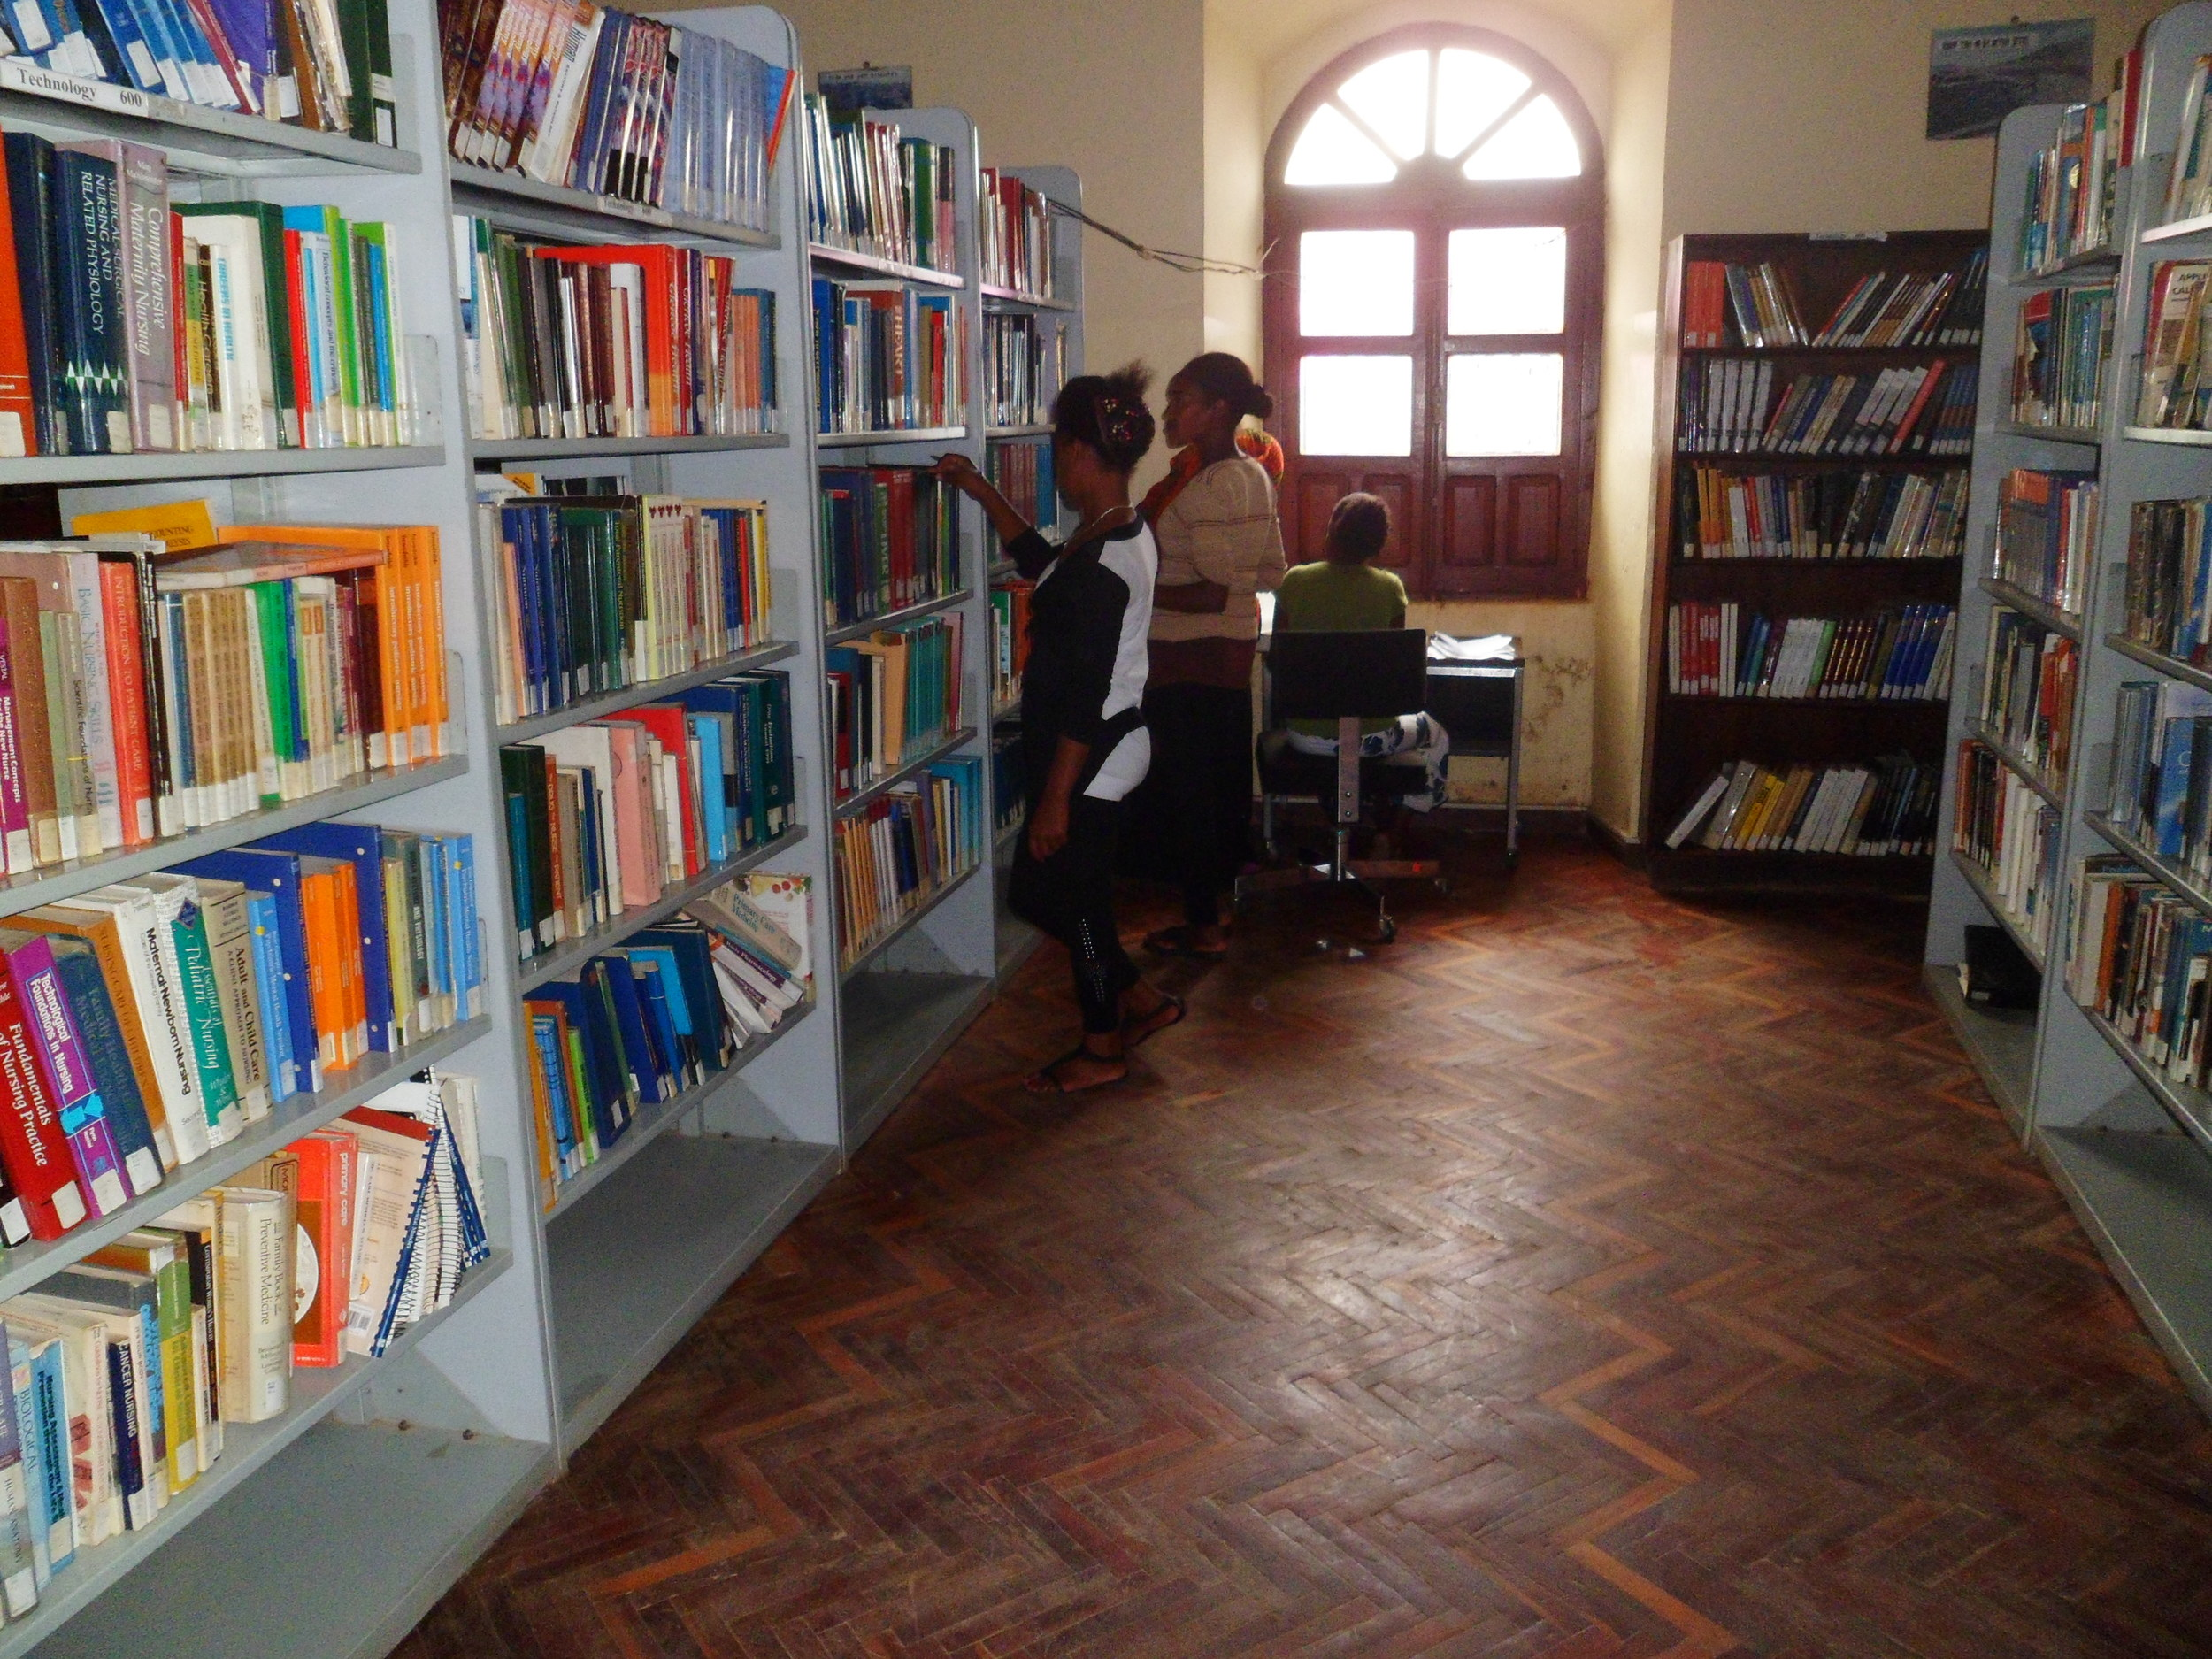 With 20,000 books in its possession, the library offers resources that are unavailable anywhere else in the city.